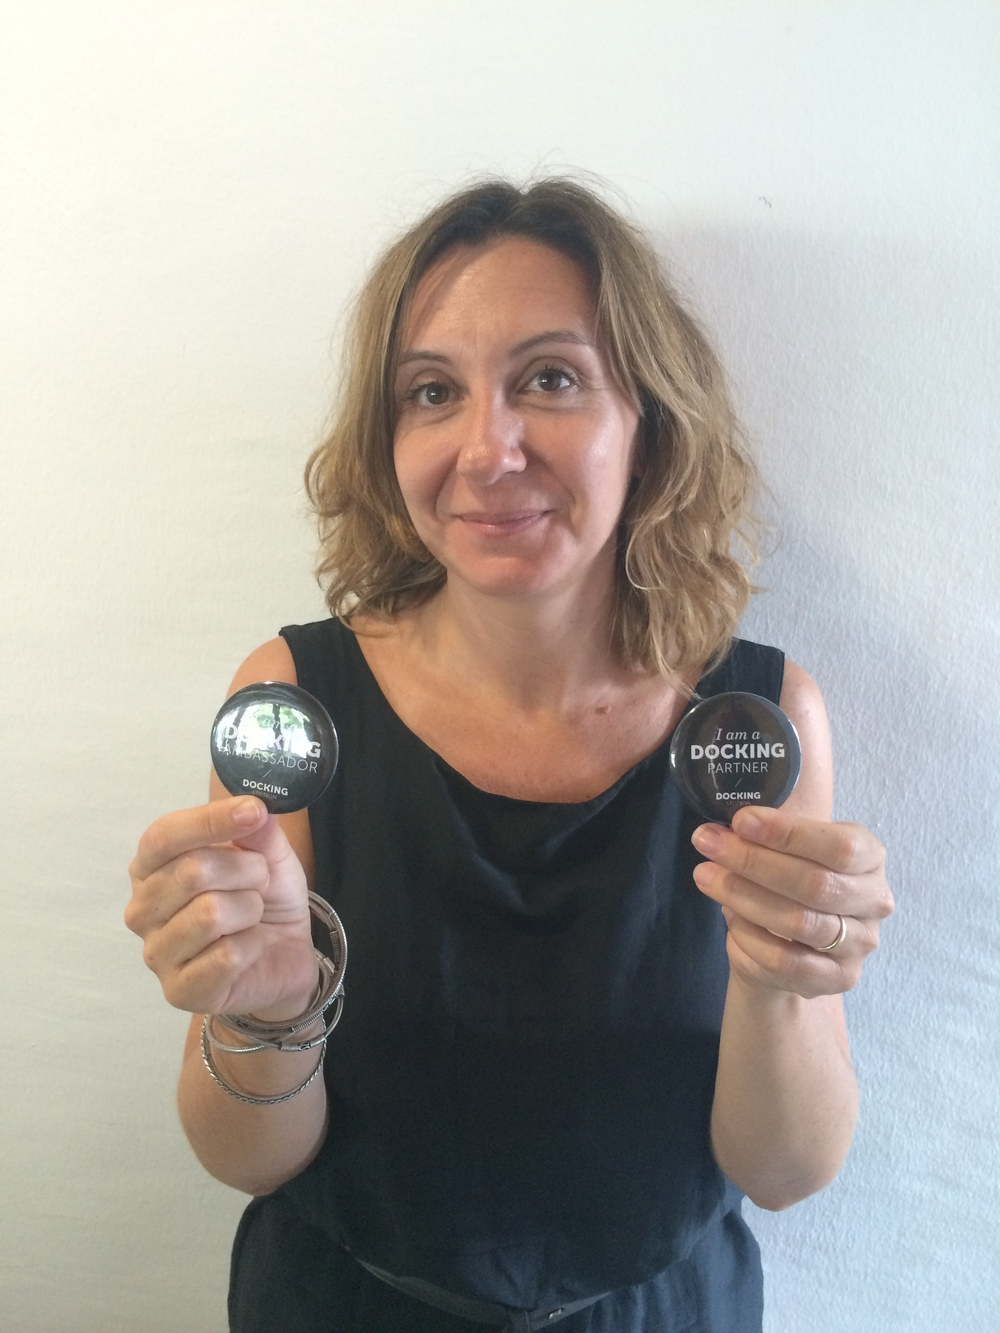 MARCELLA MANNI Gallery owner at Metronom, Modena, Italy